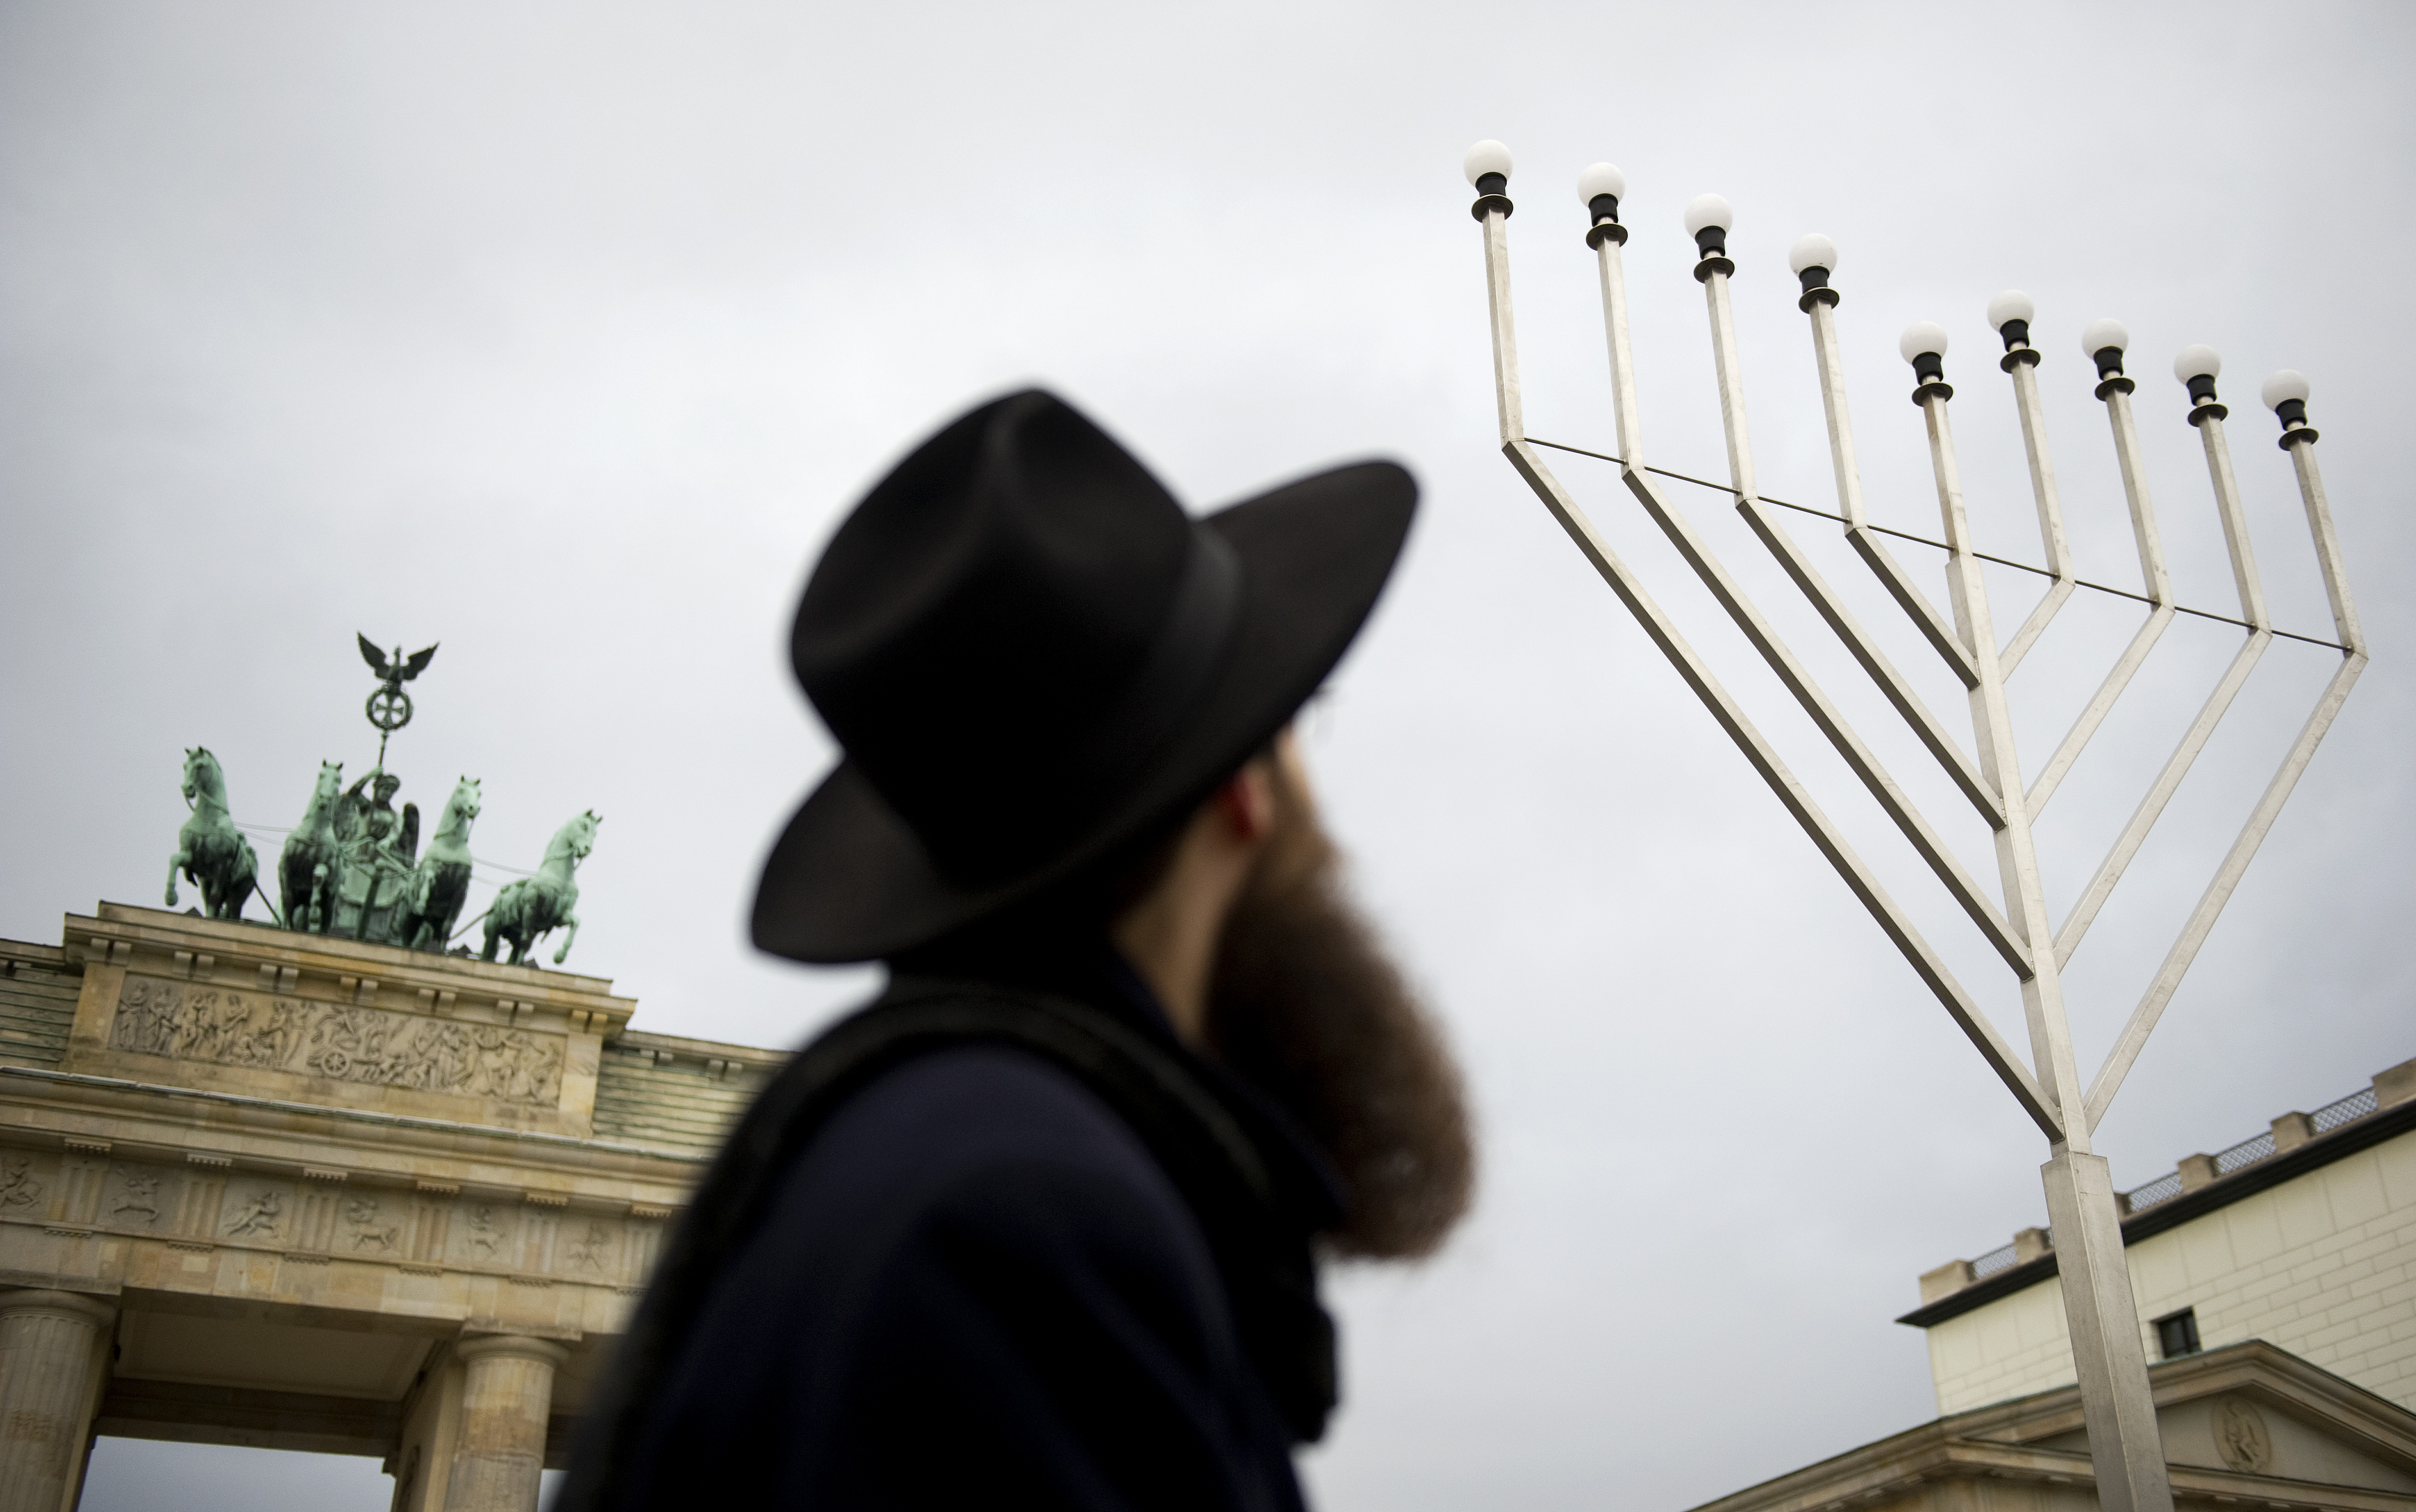 Rabbi Shmuel Segal of the Jewish education centre looks up at the Chanukkah lights in front of Brandenburg Gate in Berlin, December 20, 2011.